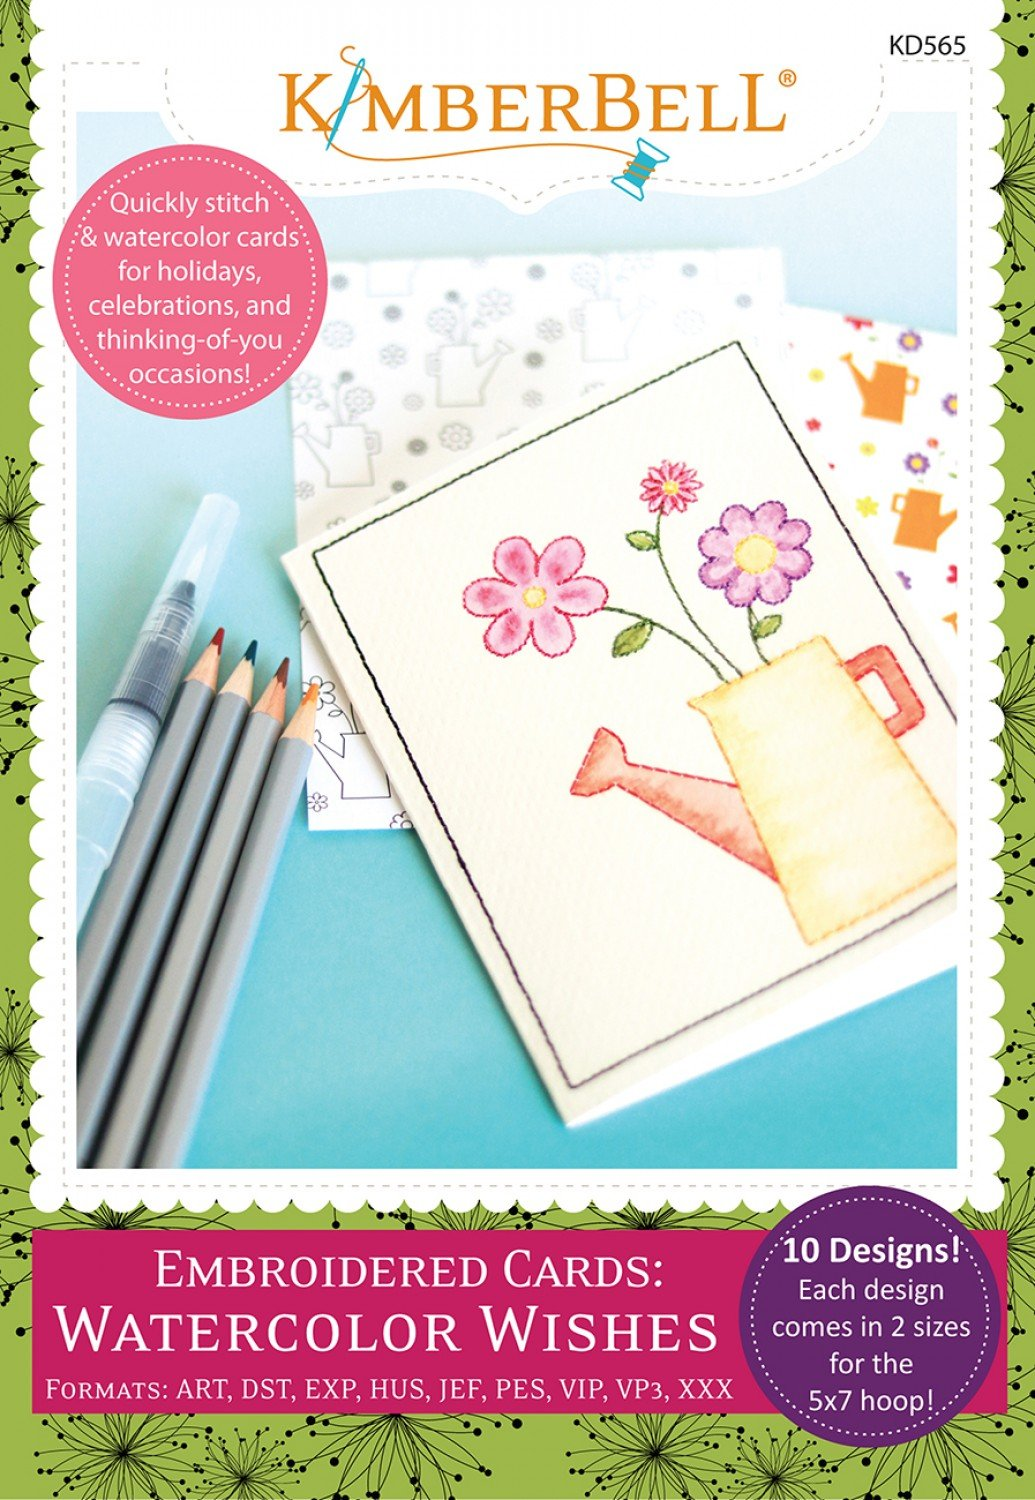 Watercolor Wishes Embroidery CD KD565